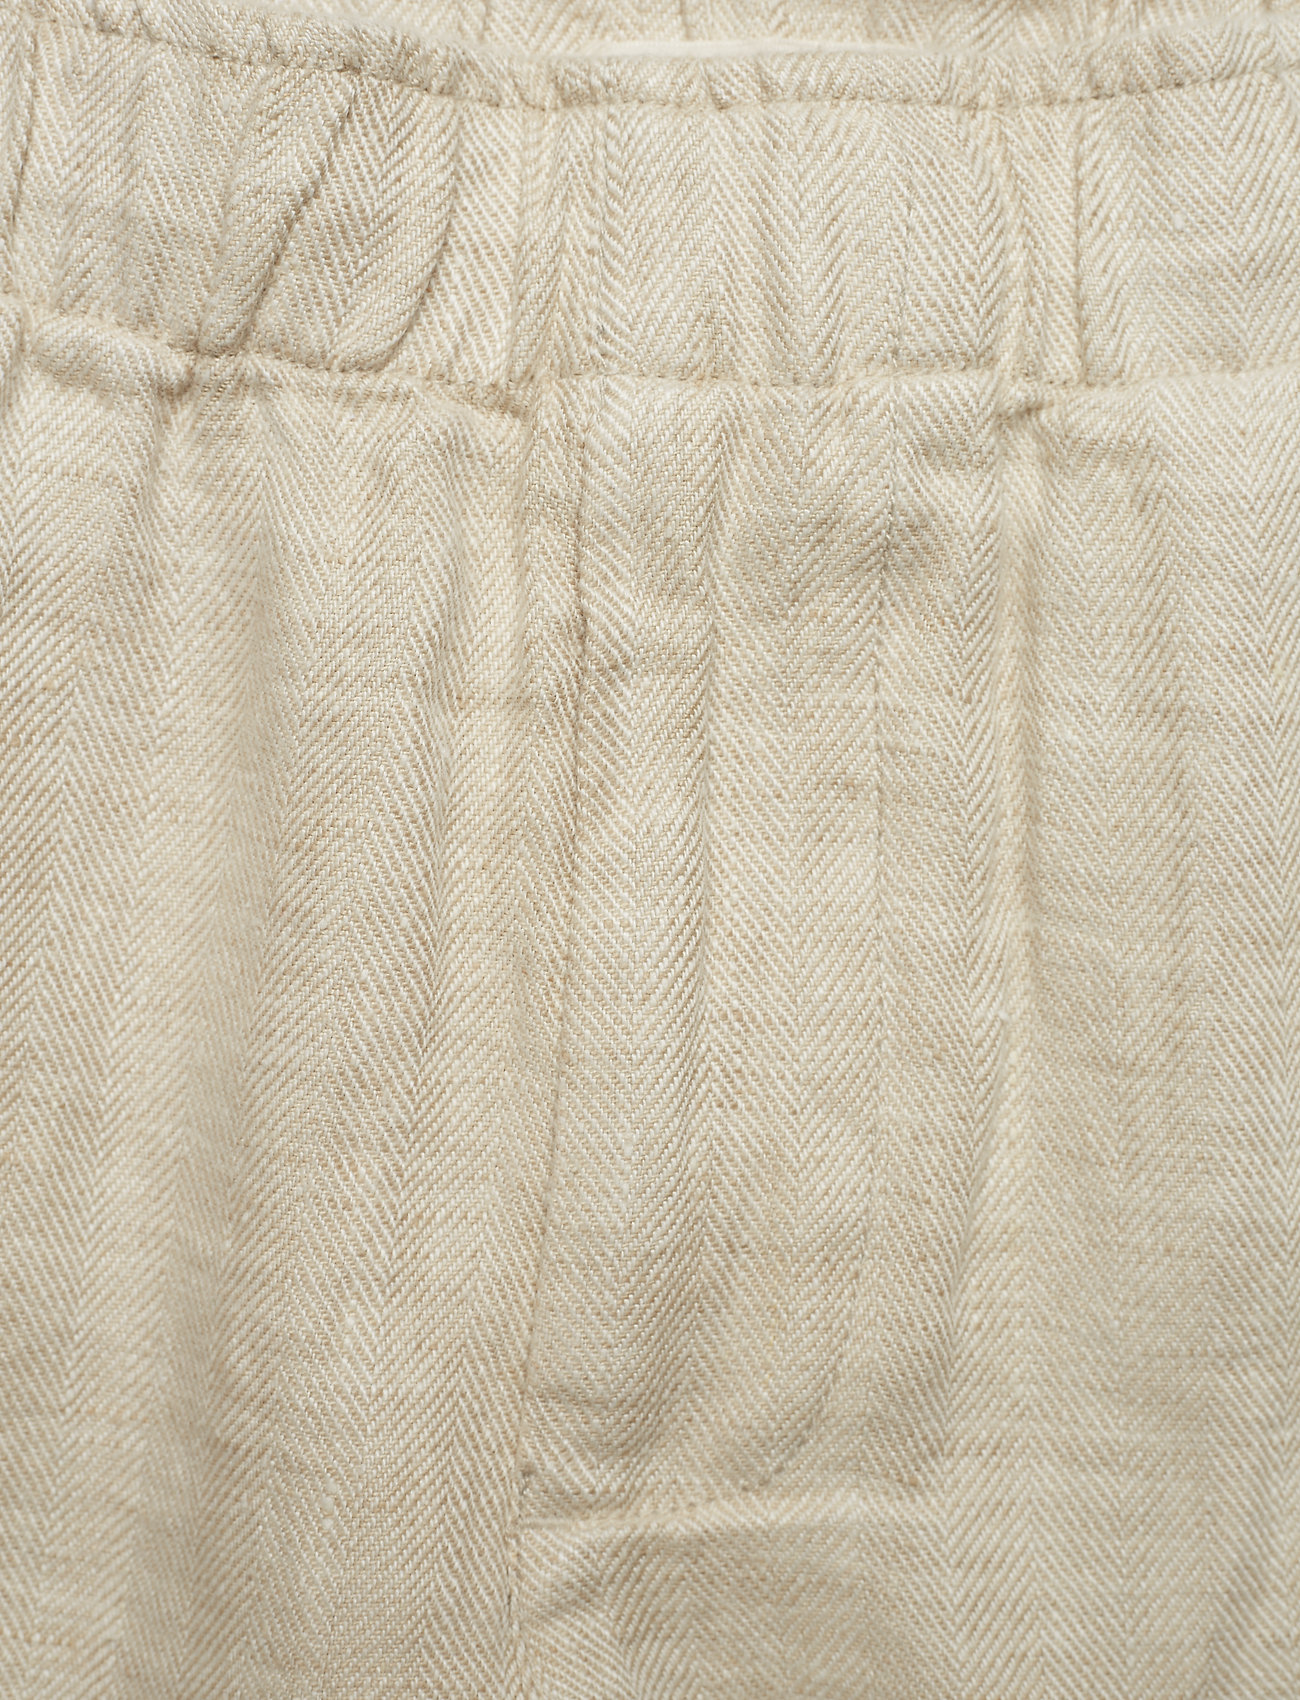 Loose GrayKnowledge Pant Apparel Feather Fishbonelight Cotton 8nOwNZkP0X